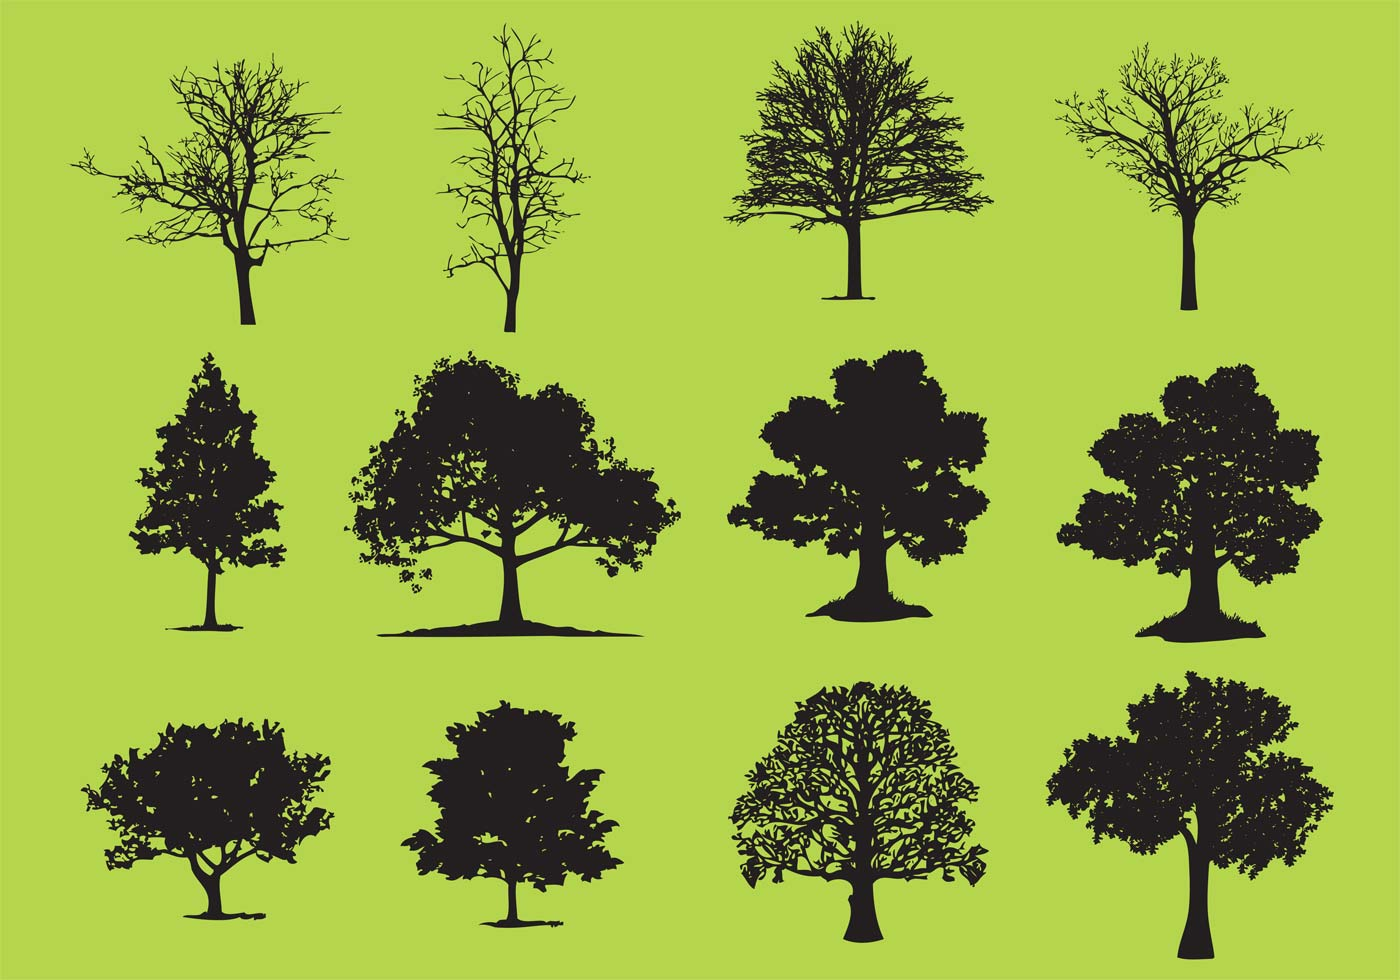 Tree line silhouette clipart vector image royalty free stock Tree Silhouette Free Vector Art | 13,216 Free Images! image royalty free stock